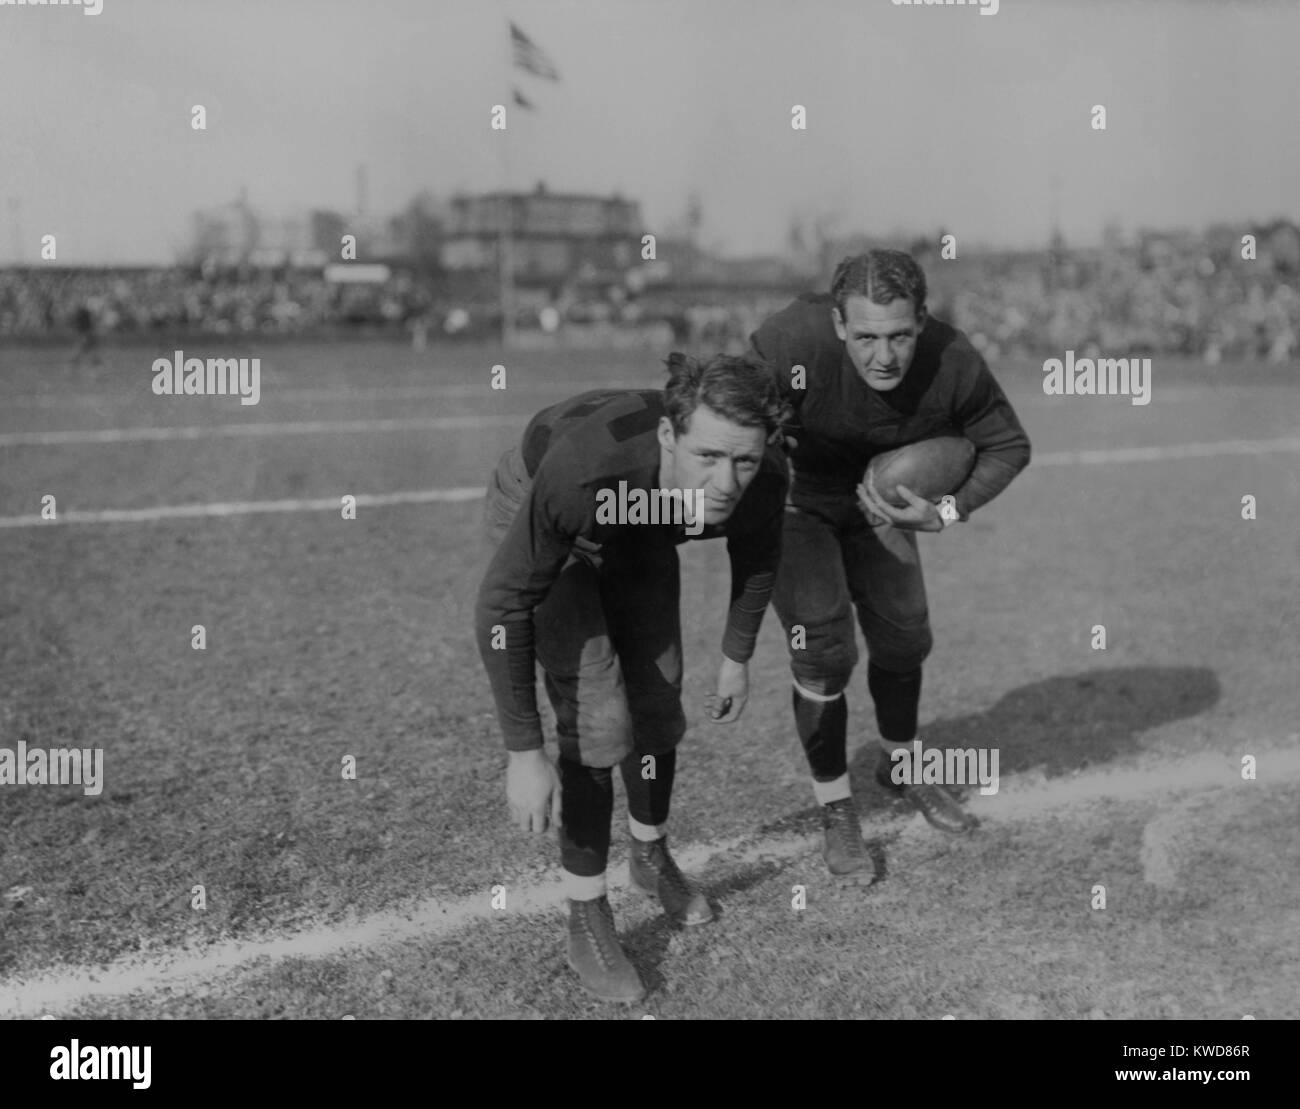 Harold 'Red' Grange (right) and his brother Garland Grange on football field. In the distance are spectators - Stock Image